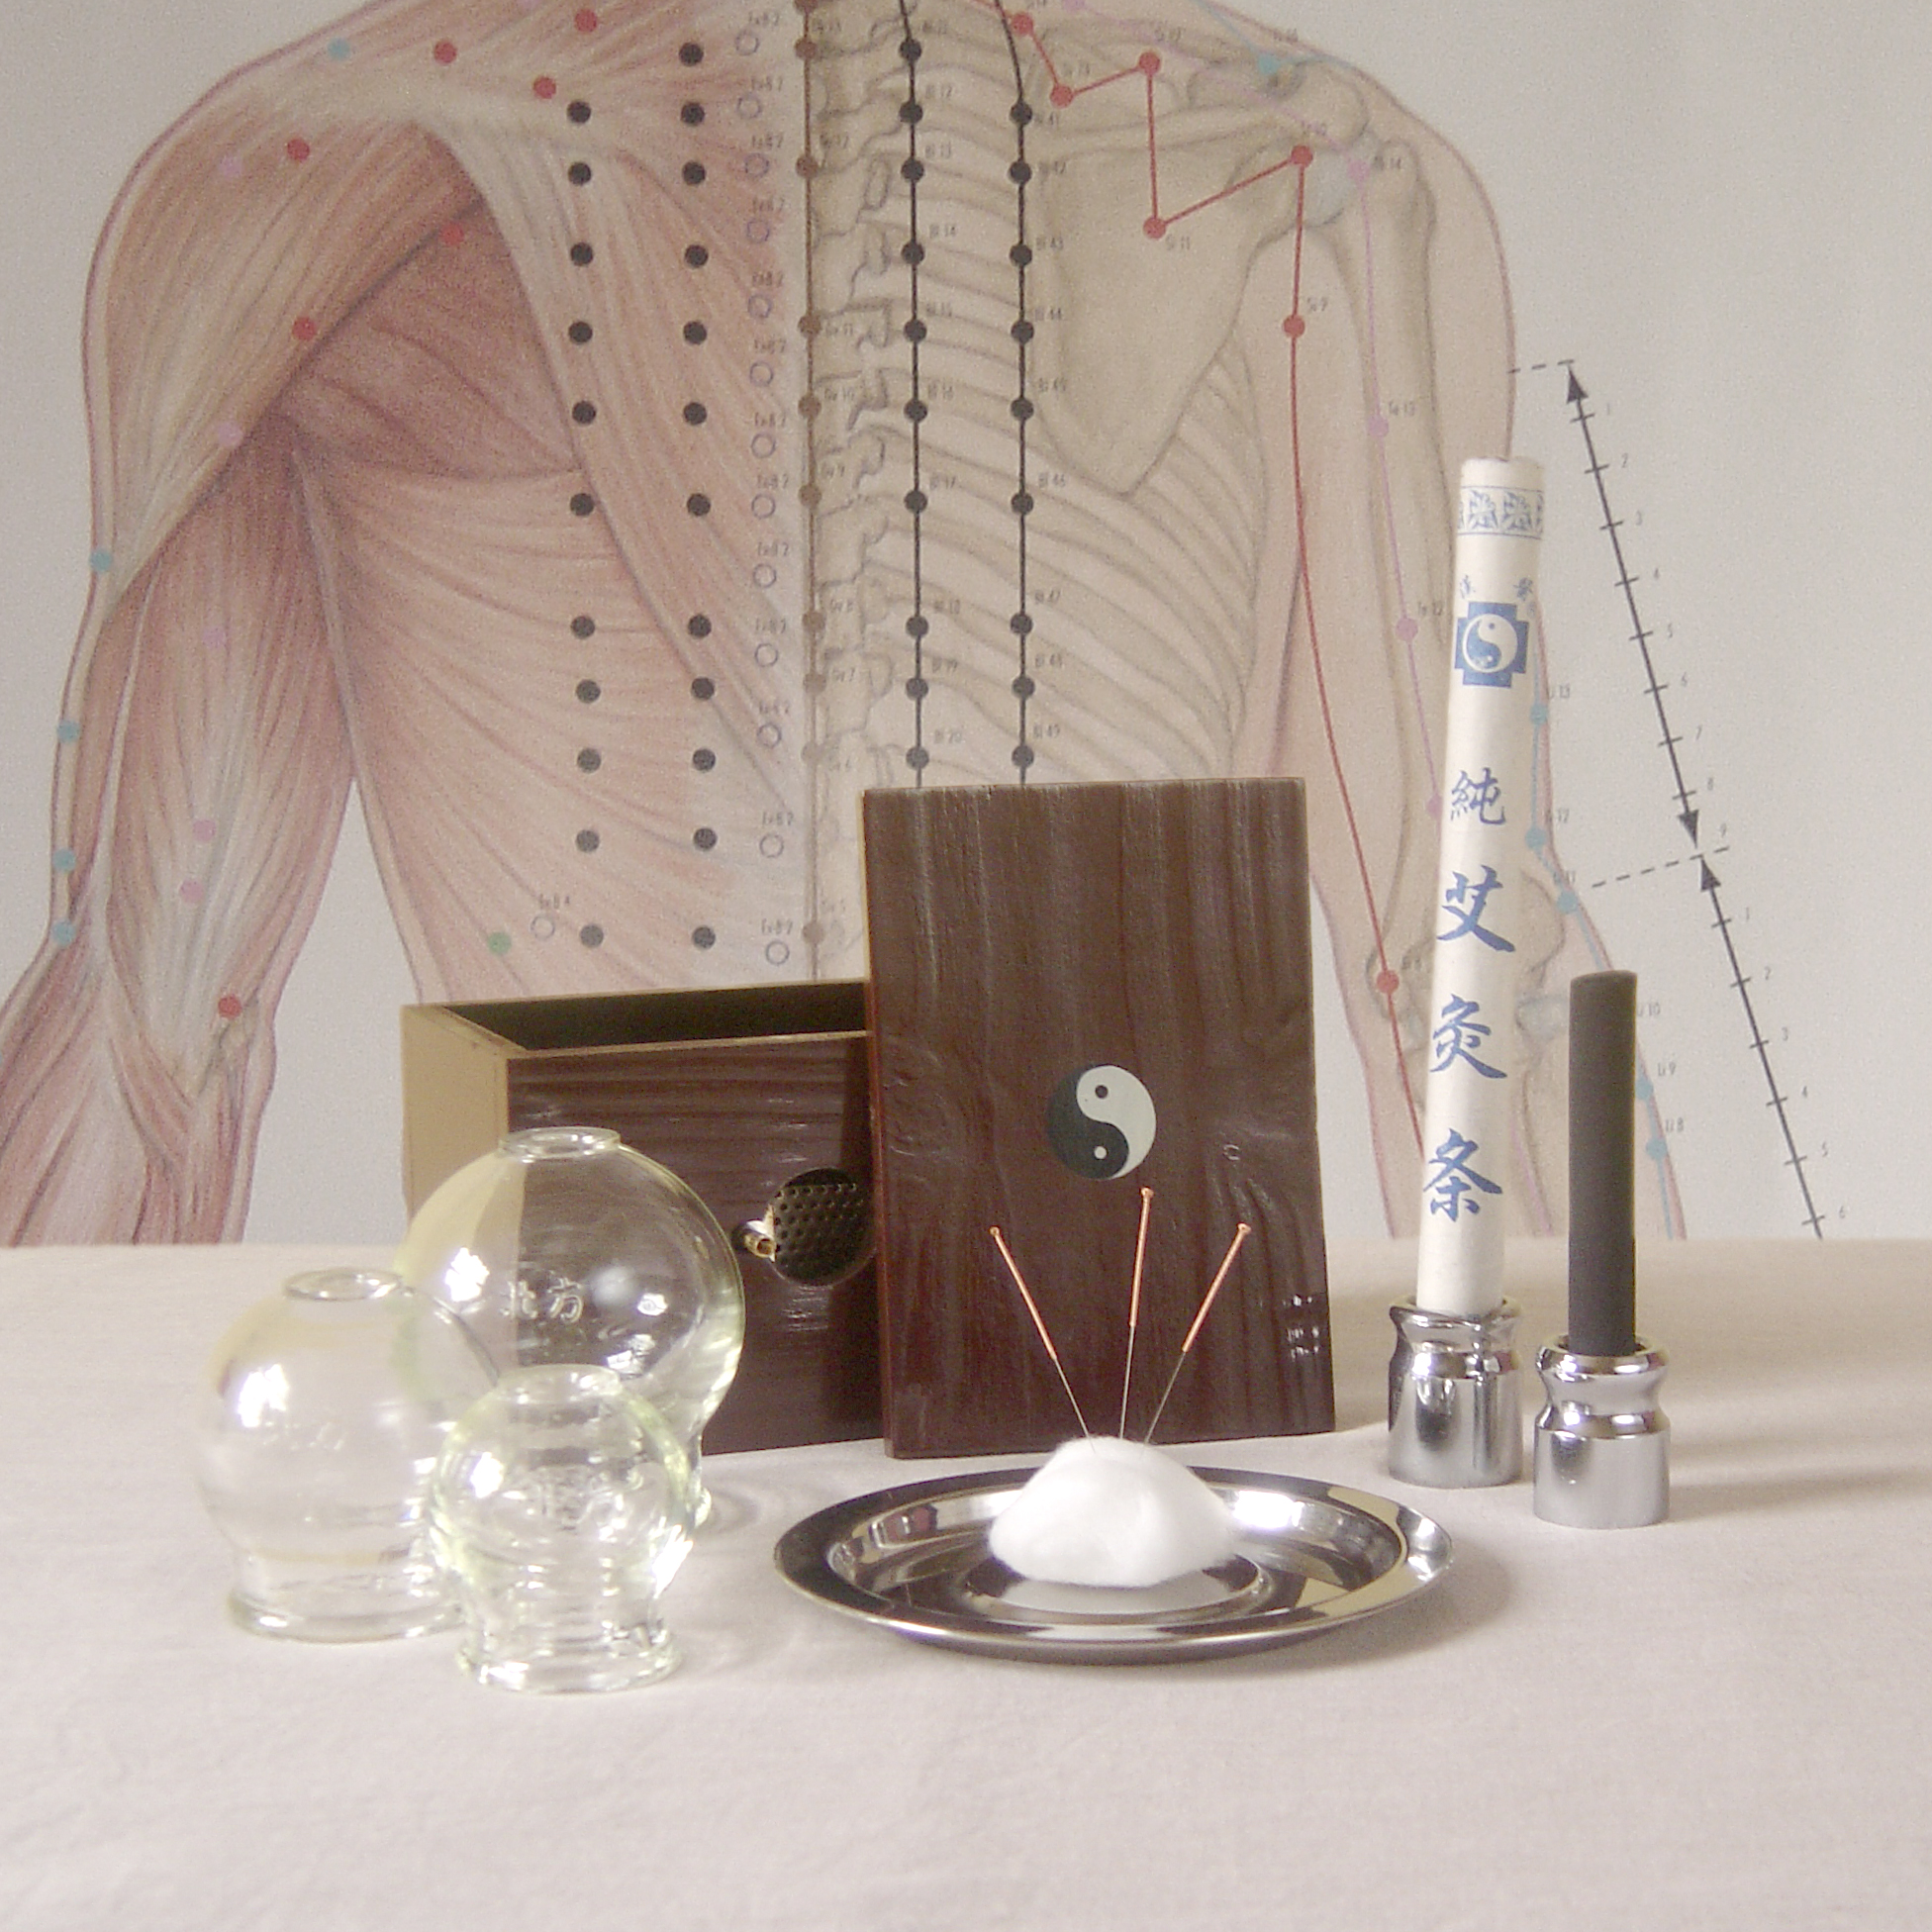 Still life - is acupuncture safe